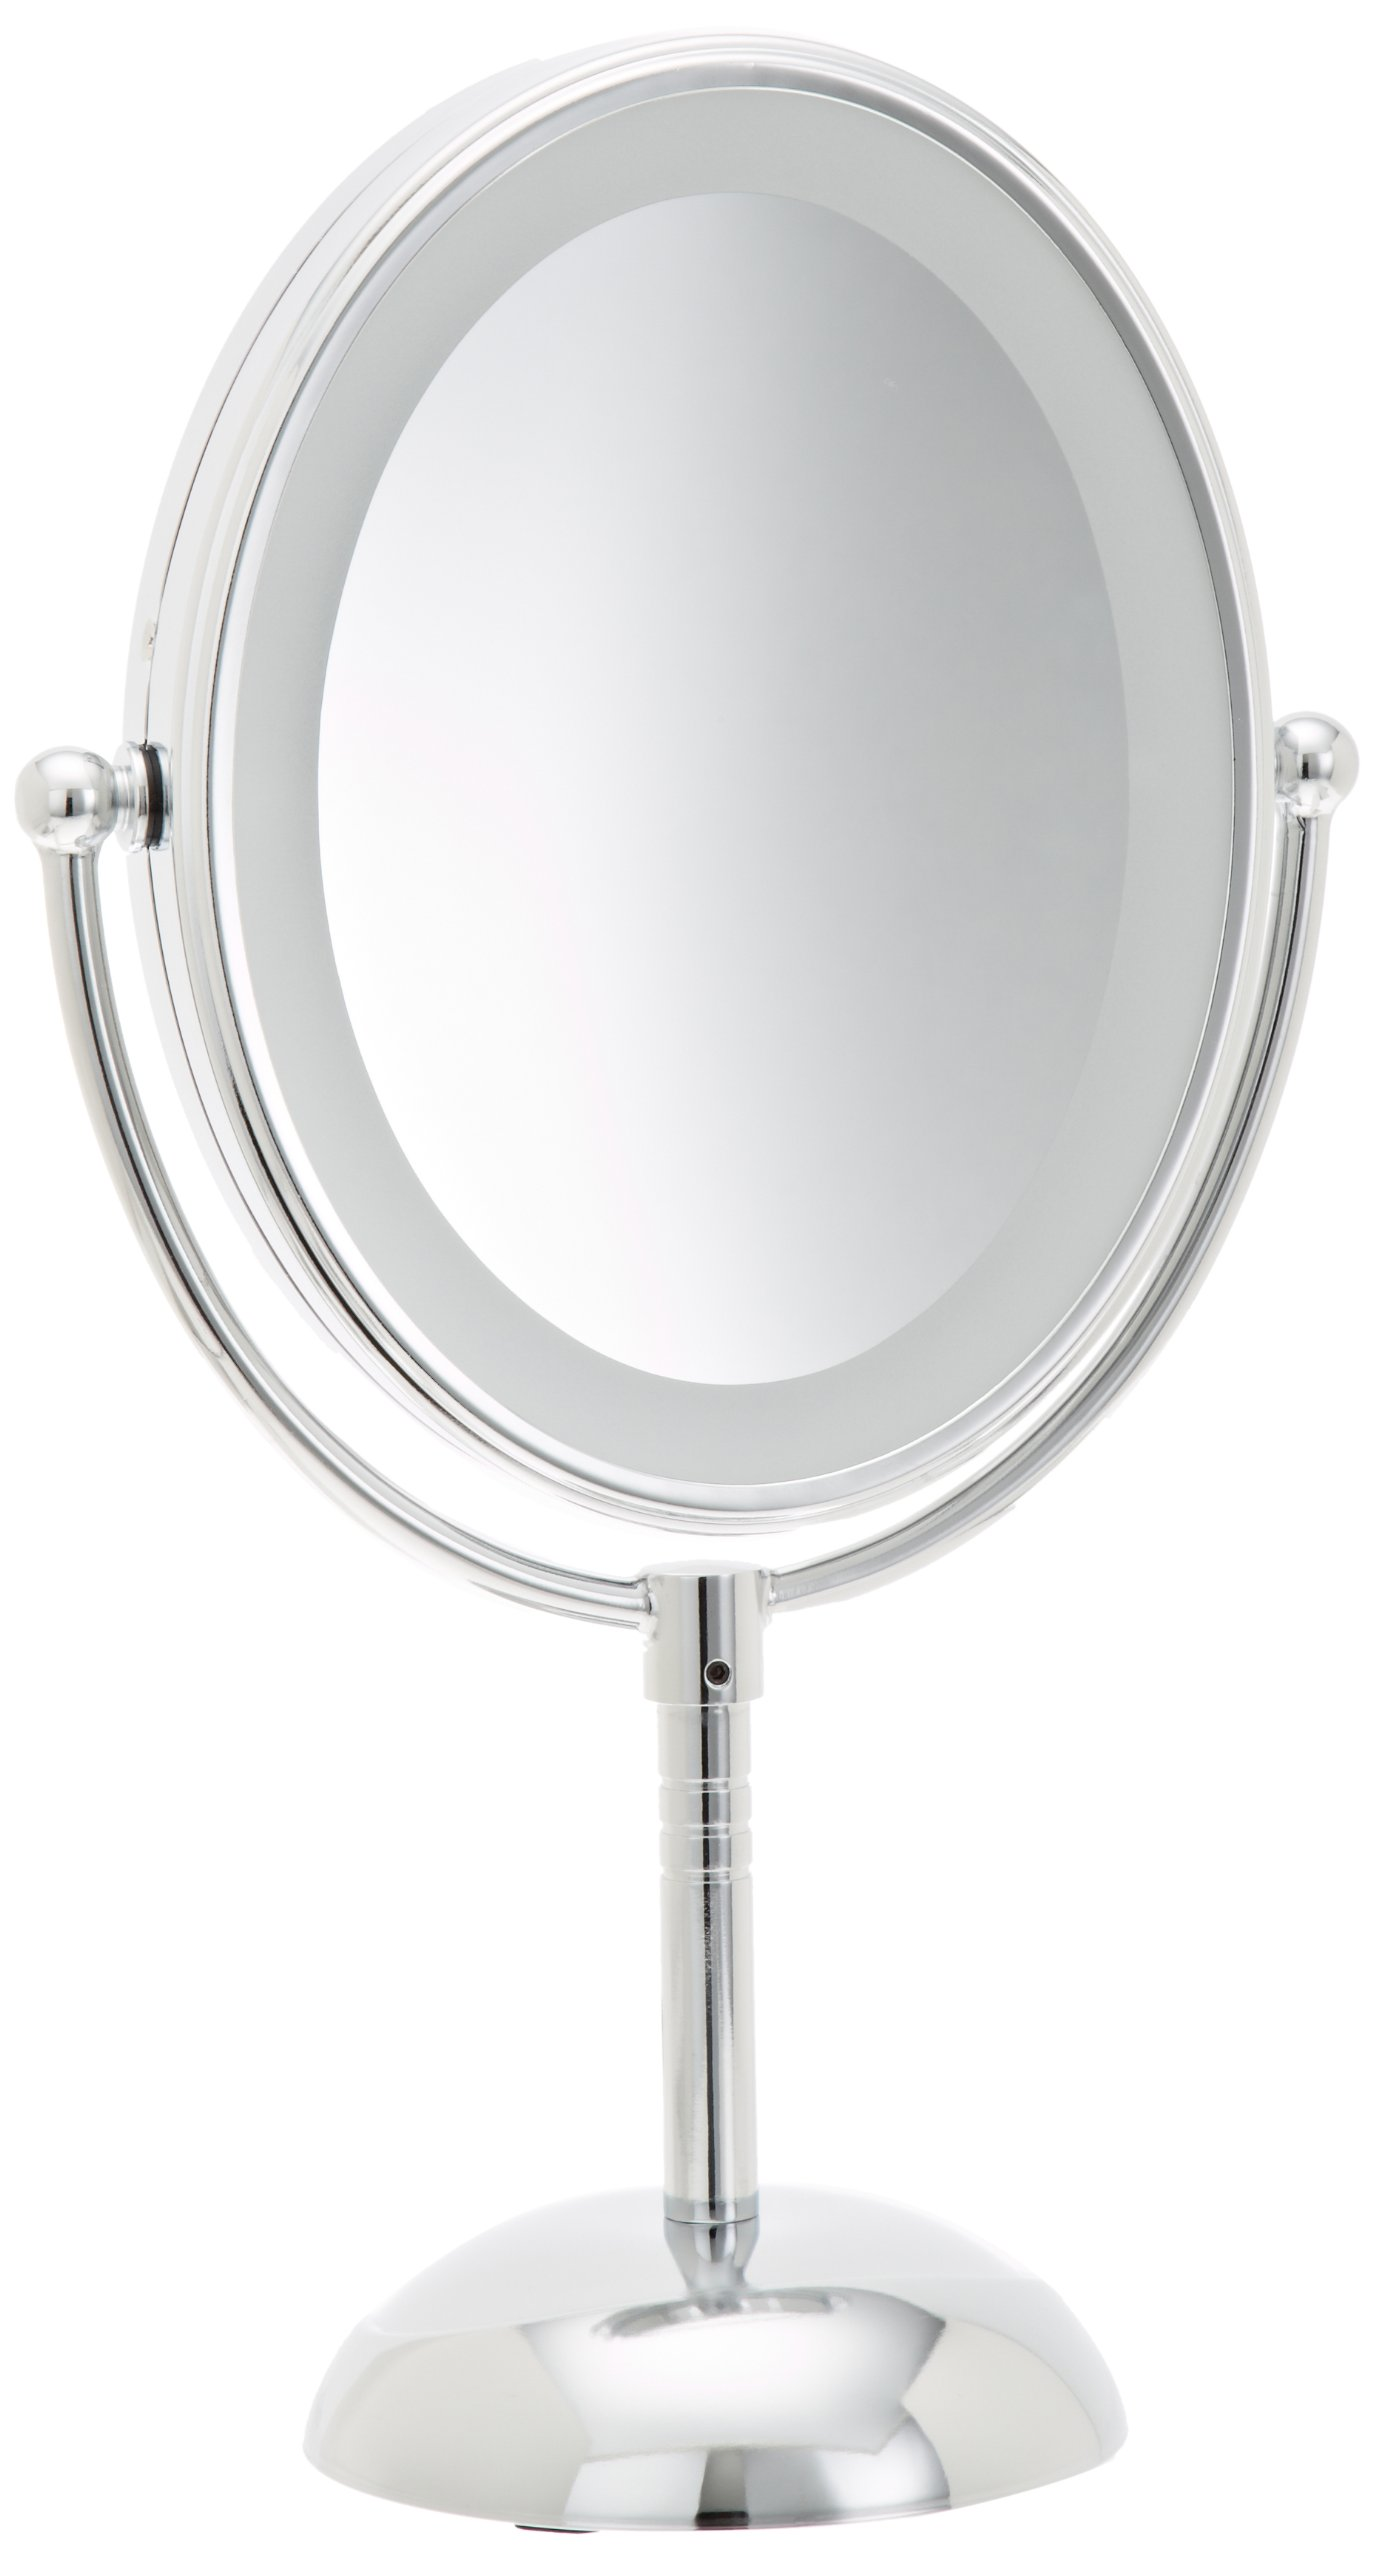 Led Battery Vanity Lights : Conair LED Makeup Mirror Reflections Lighted Battery 7x Magnifying Vanity Chrome eBay